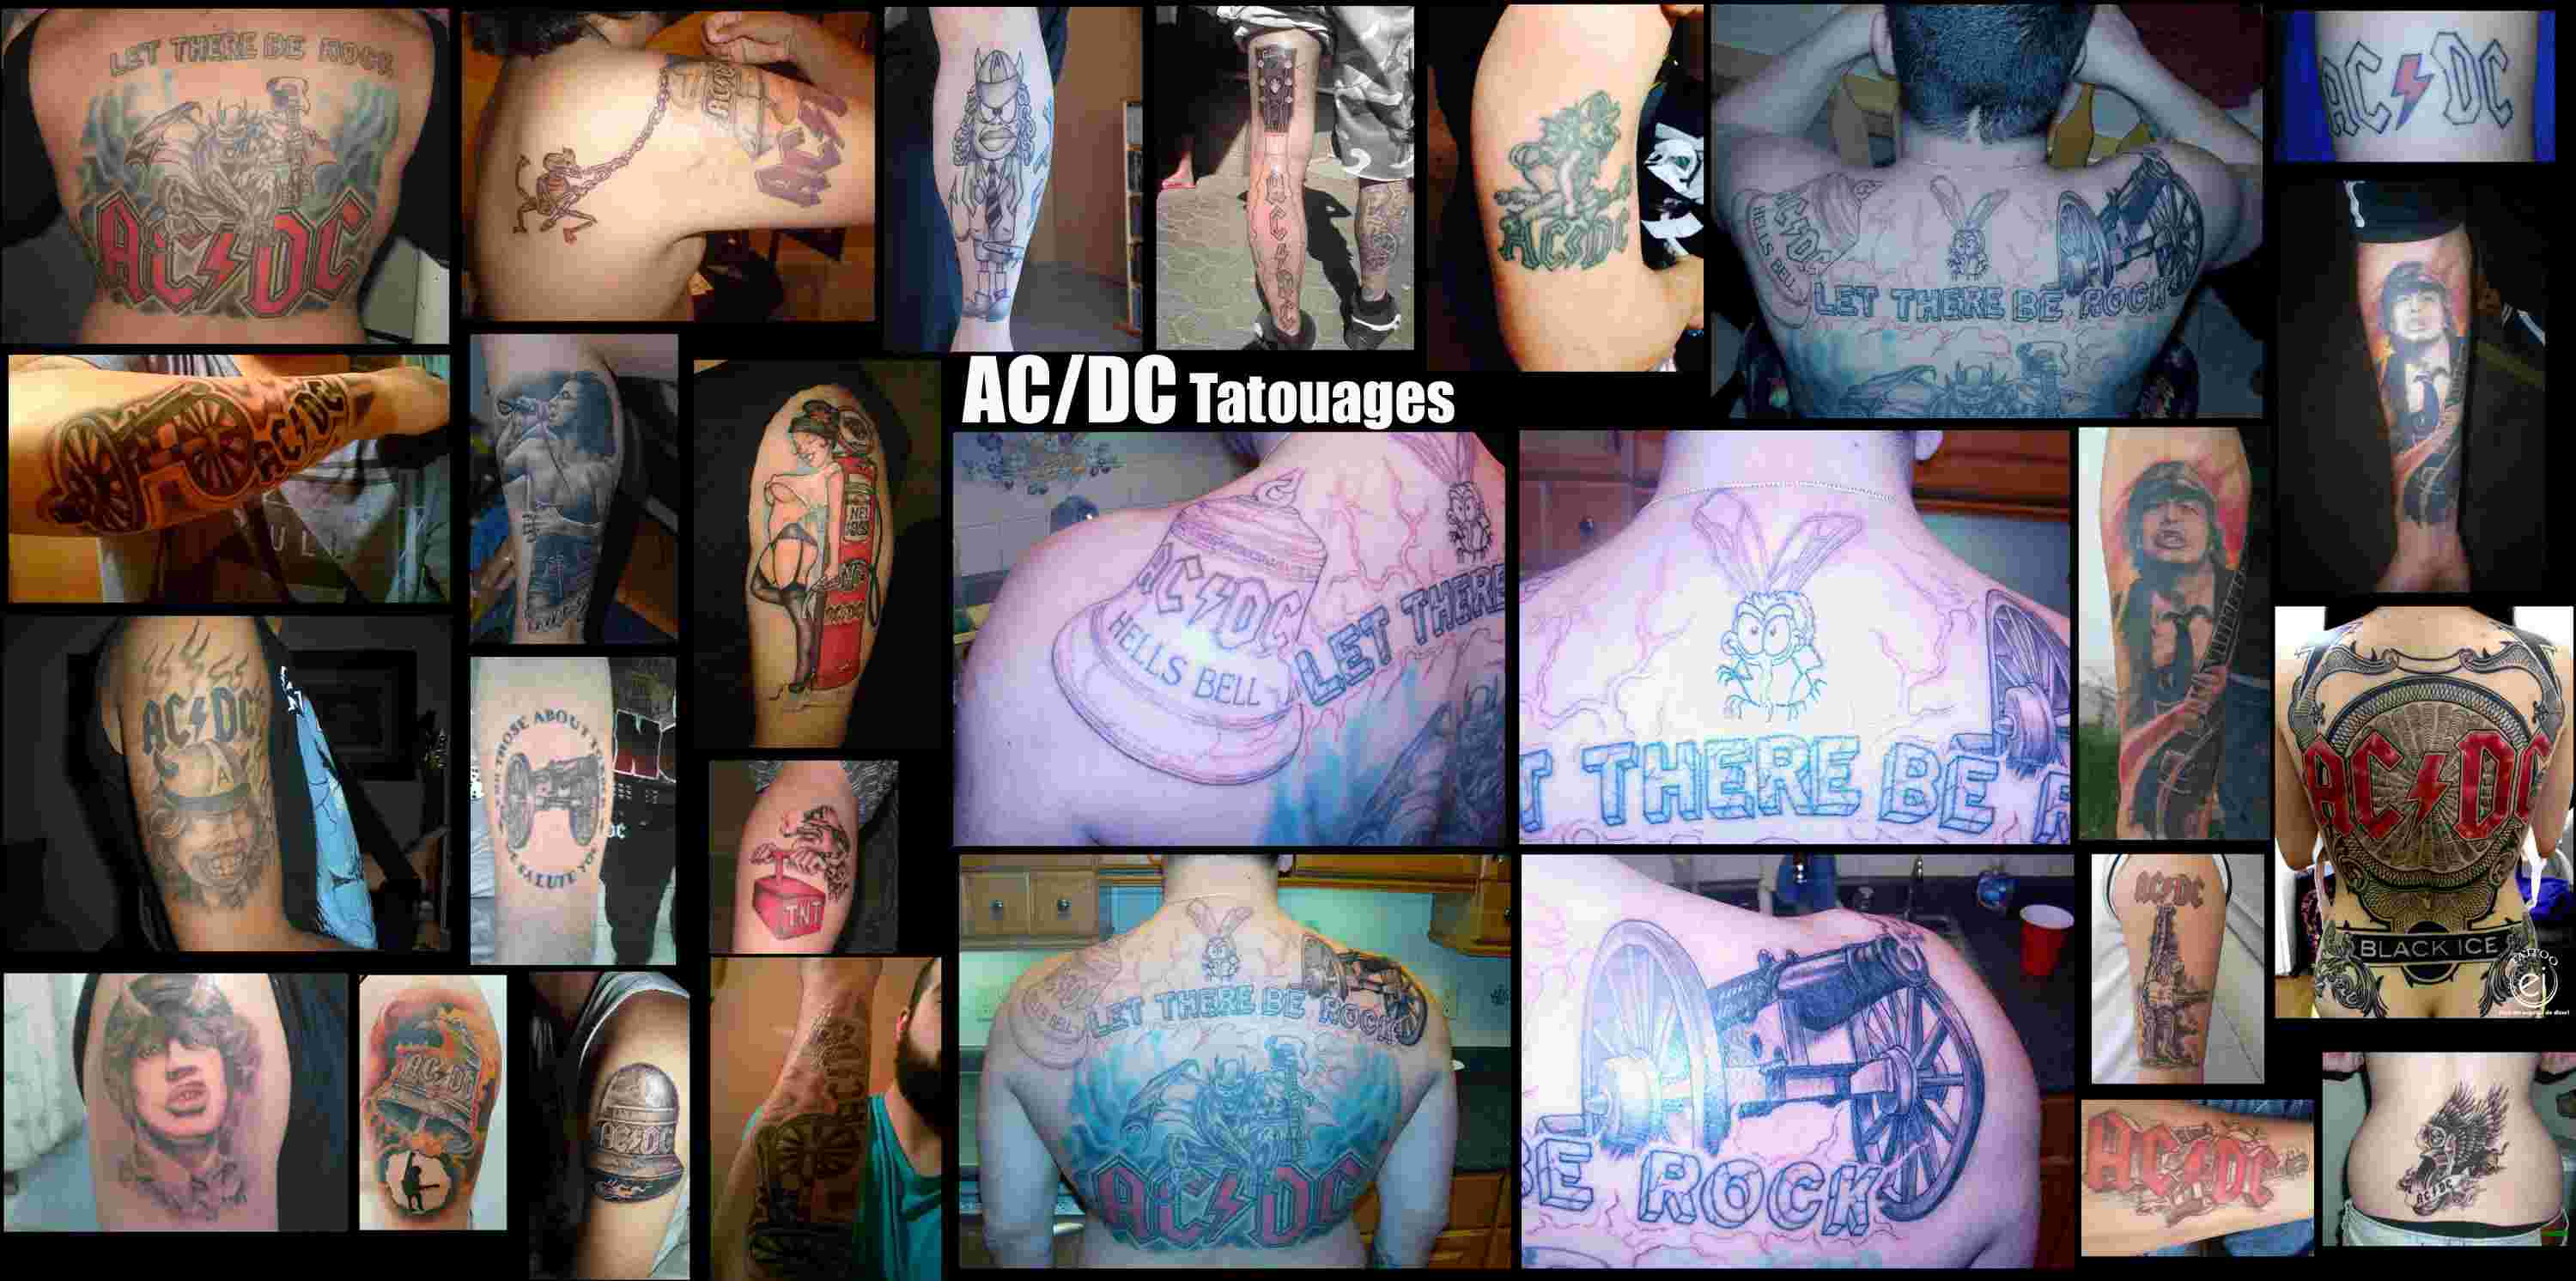 Mes petits montages photos ... - Page 9 Acdc_t10